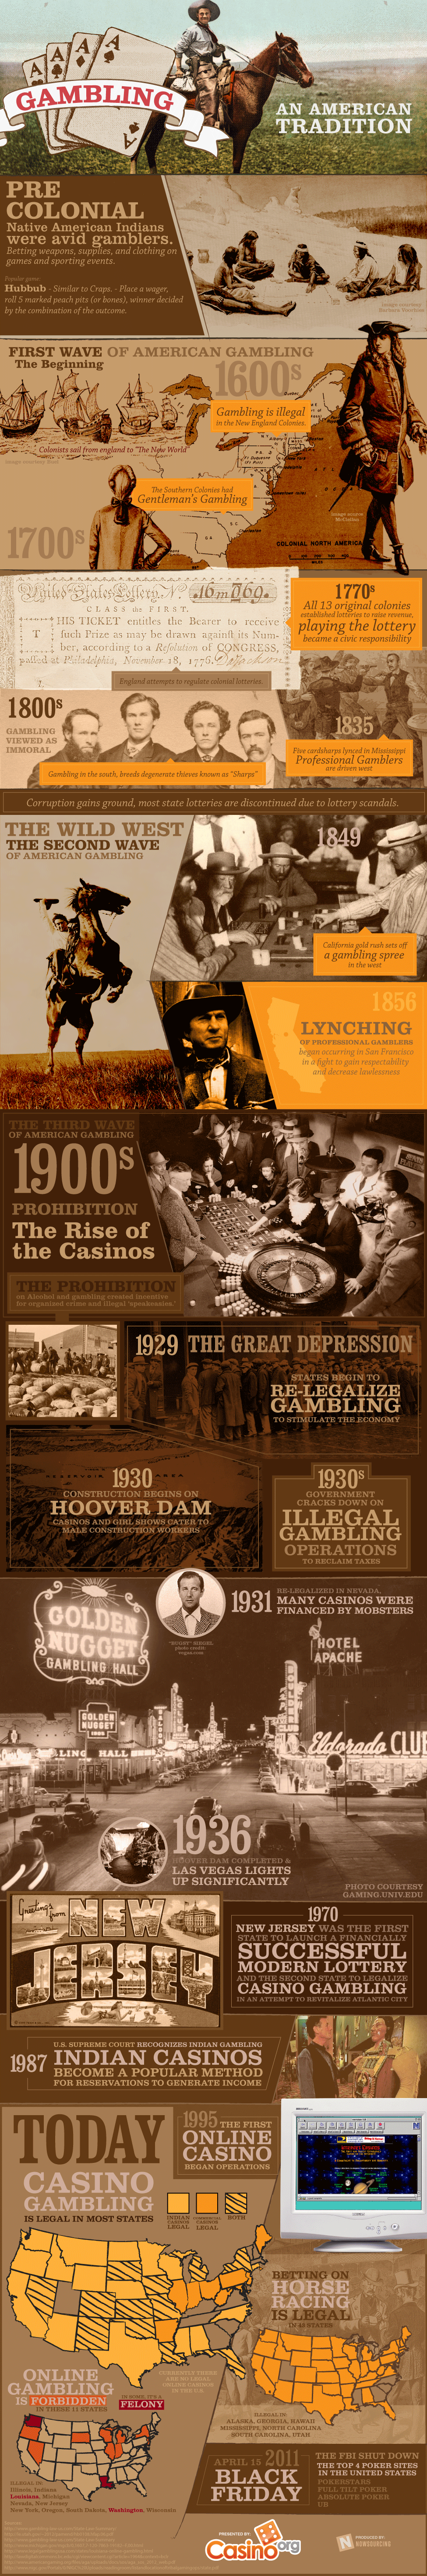 History Of Gambling In The Us